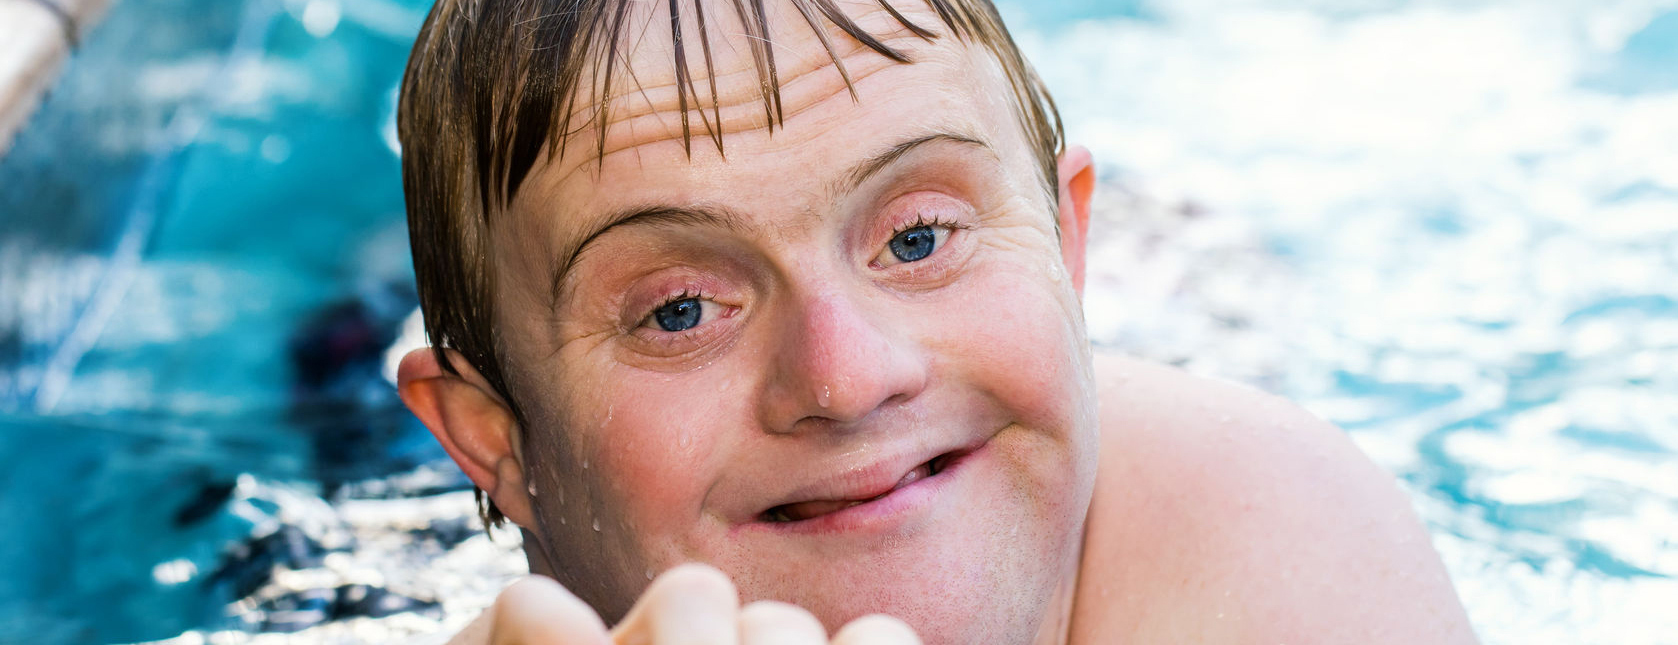 Permalink to:Supporting People with Learning Disabilities